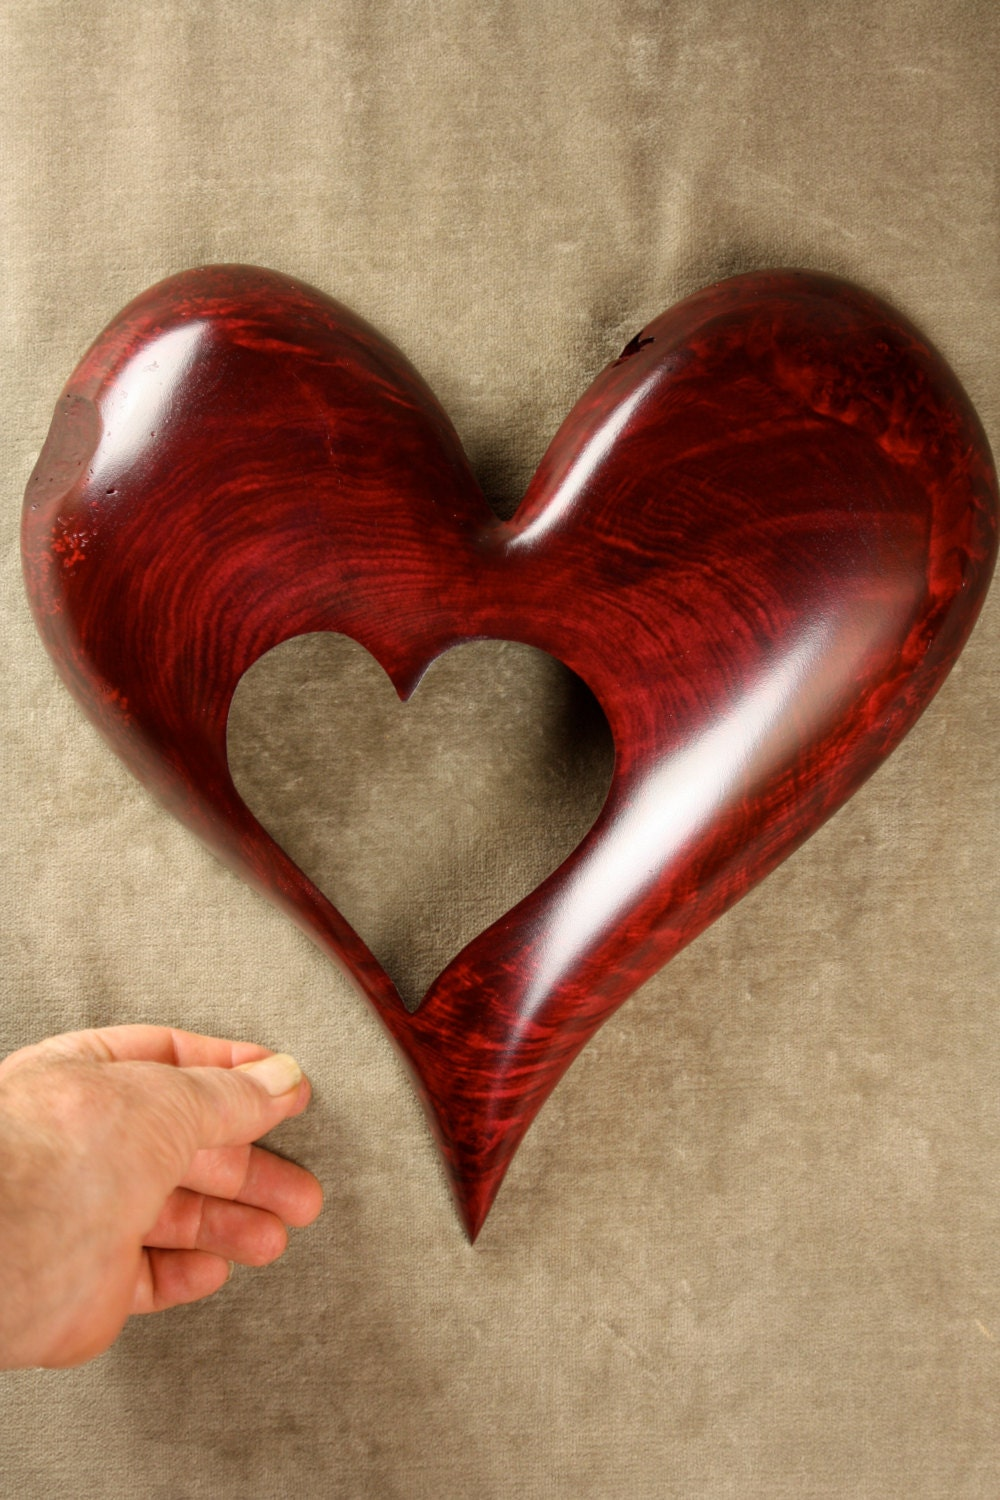 Red Heart Wood Carving Art Wooden Wedding Gift For Bride